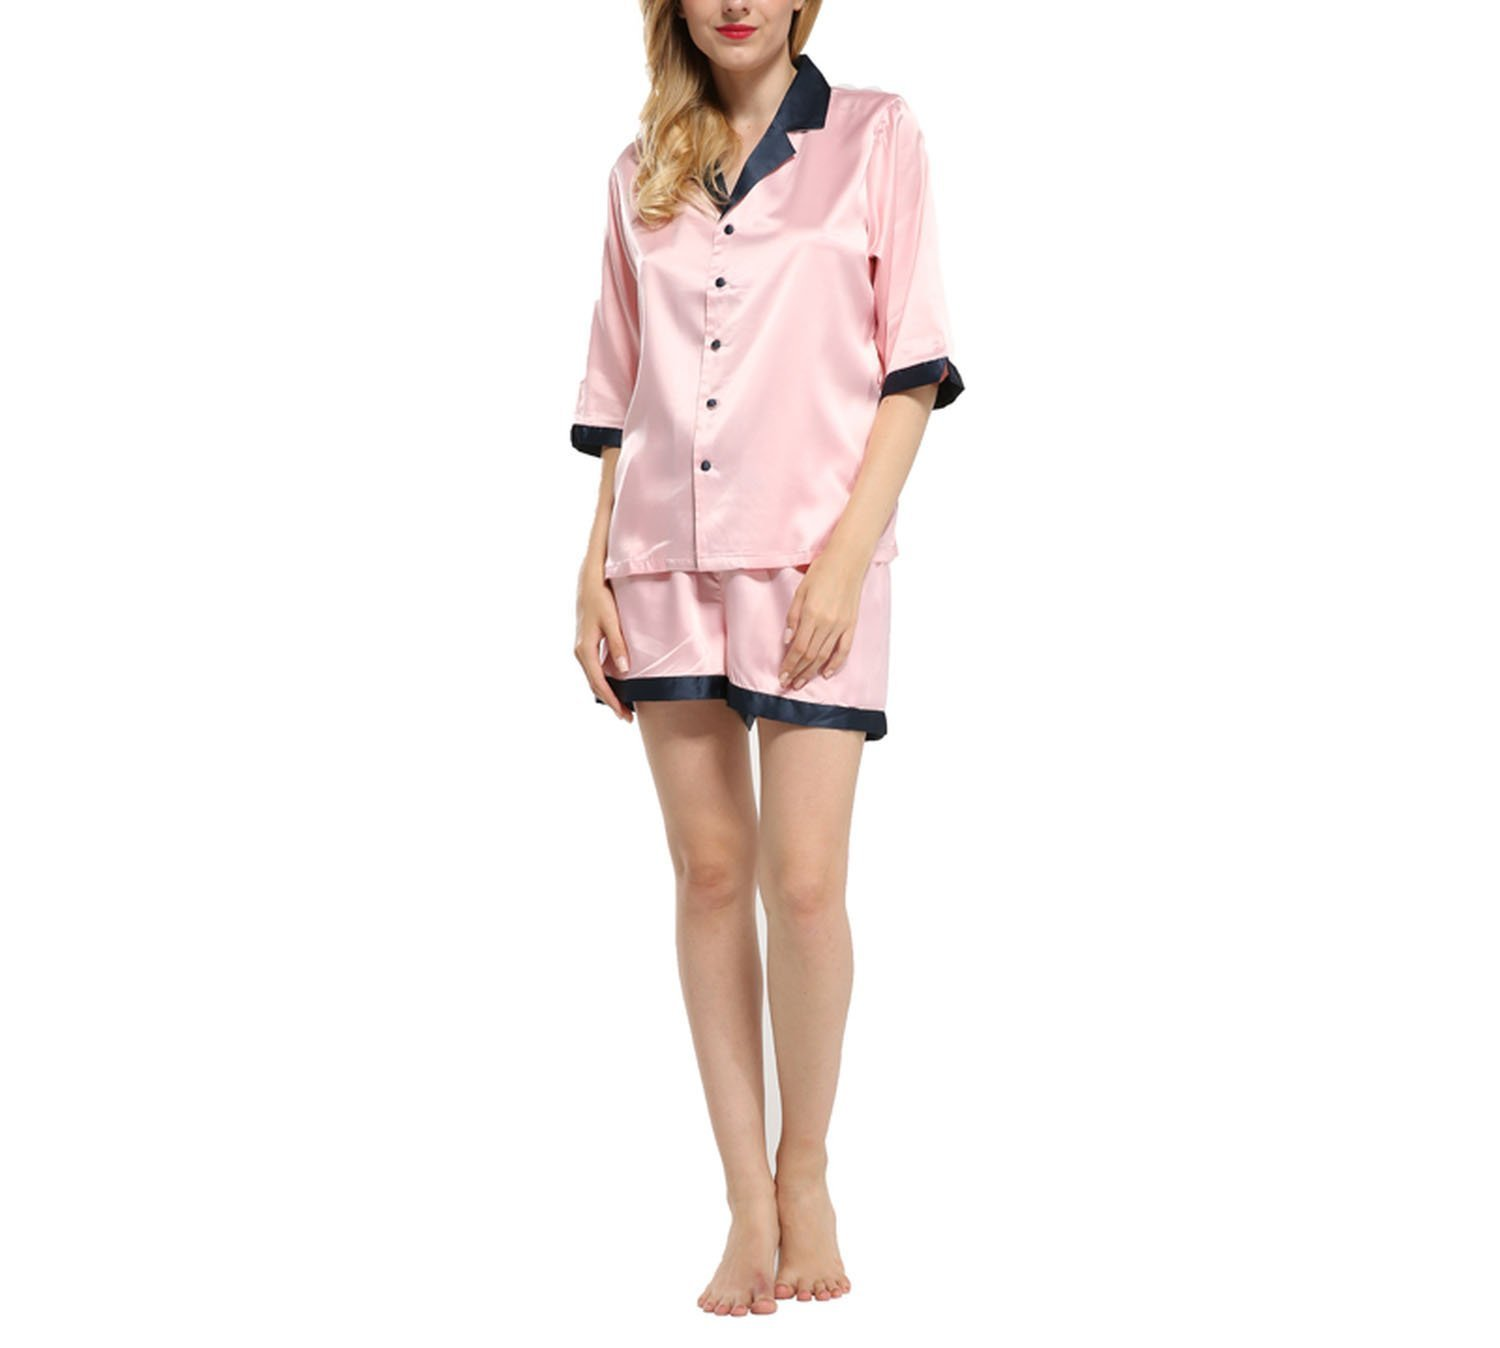 Amazon.com: Short Sleeve Satin Pajamas Sets with Blue & Pink Color Women Pijamas Set Selling Pyjamas for Female Summer Suit: Clothing